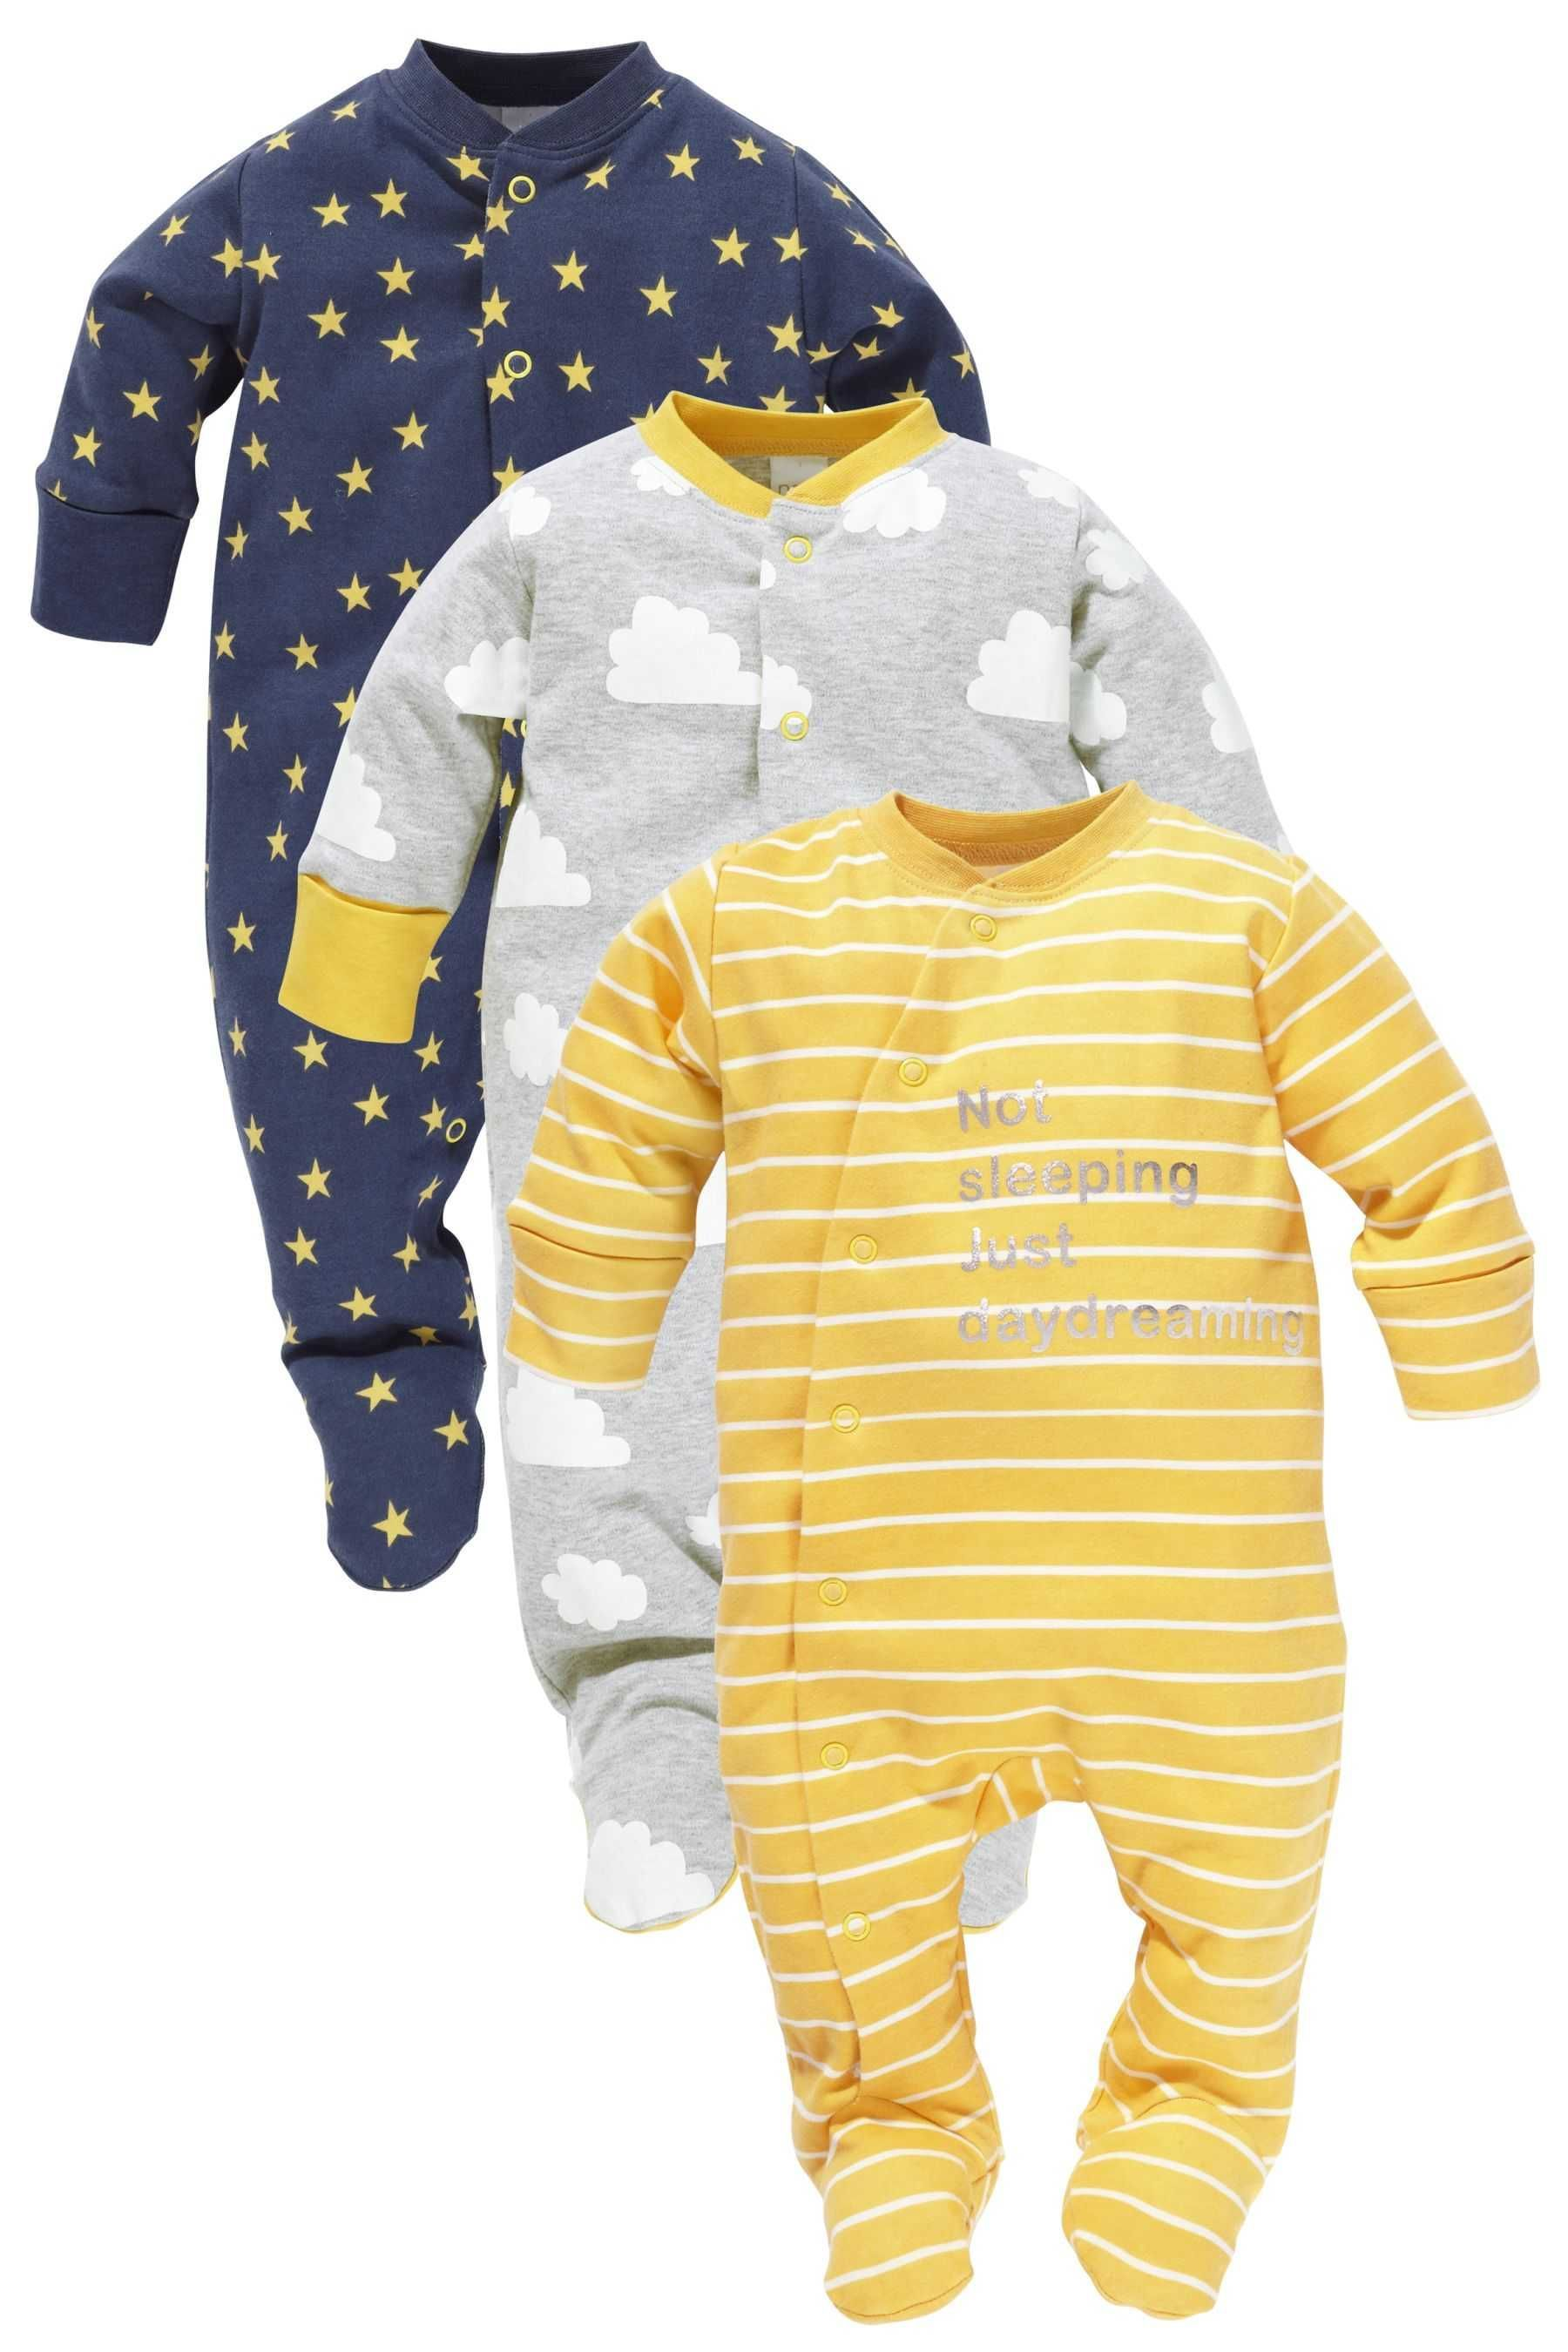 Day Dreamer Unisex Newborn Boys Amp Unisex Boys Clothing